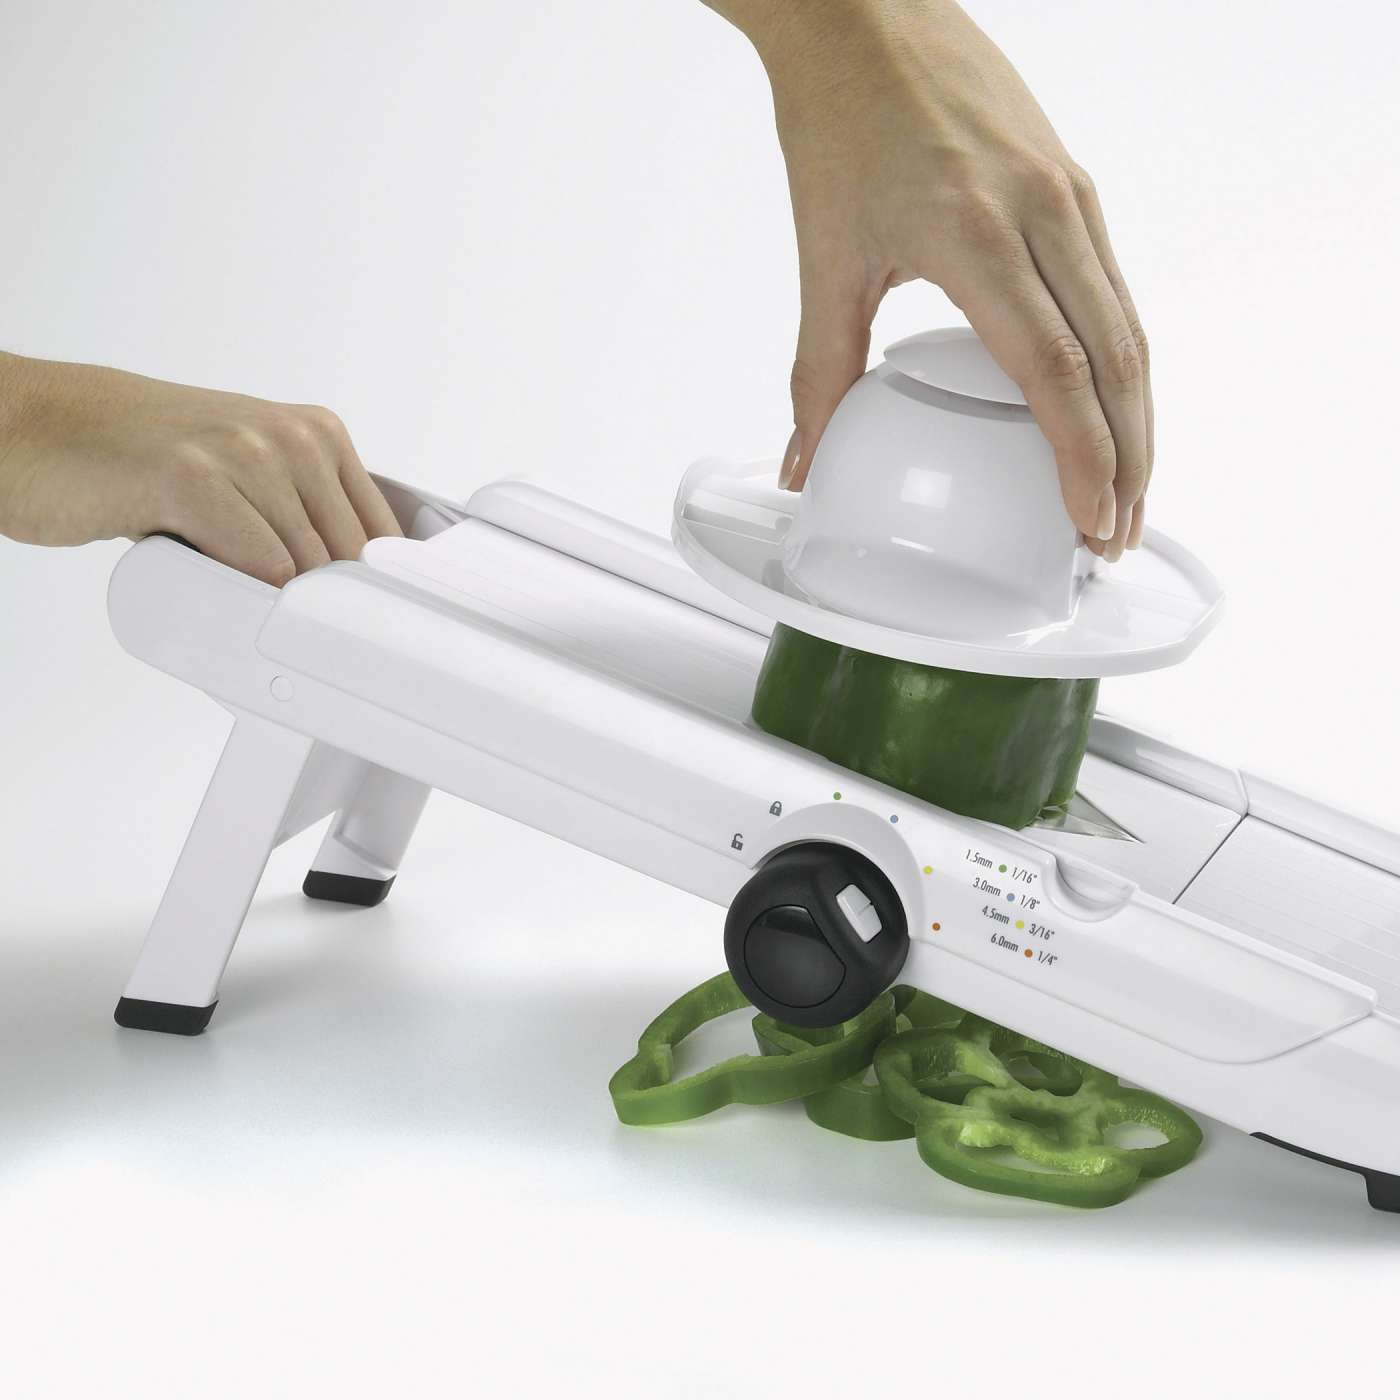 Buy oxo good grips v-blade mandoline slicer online at low prices.